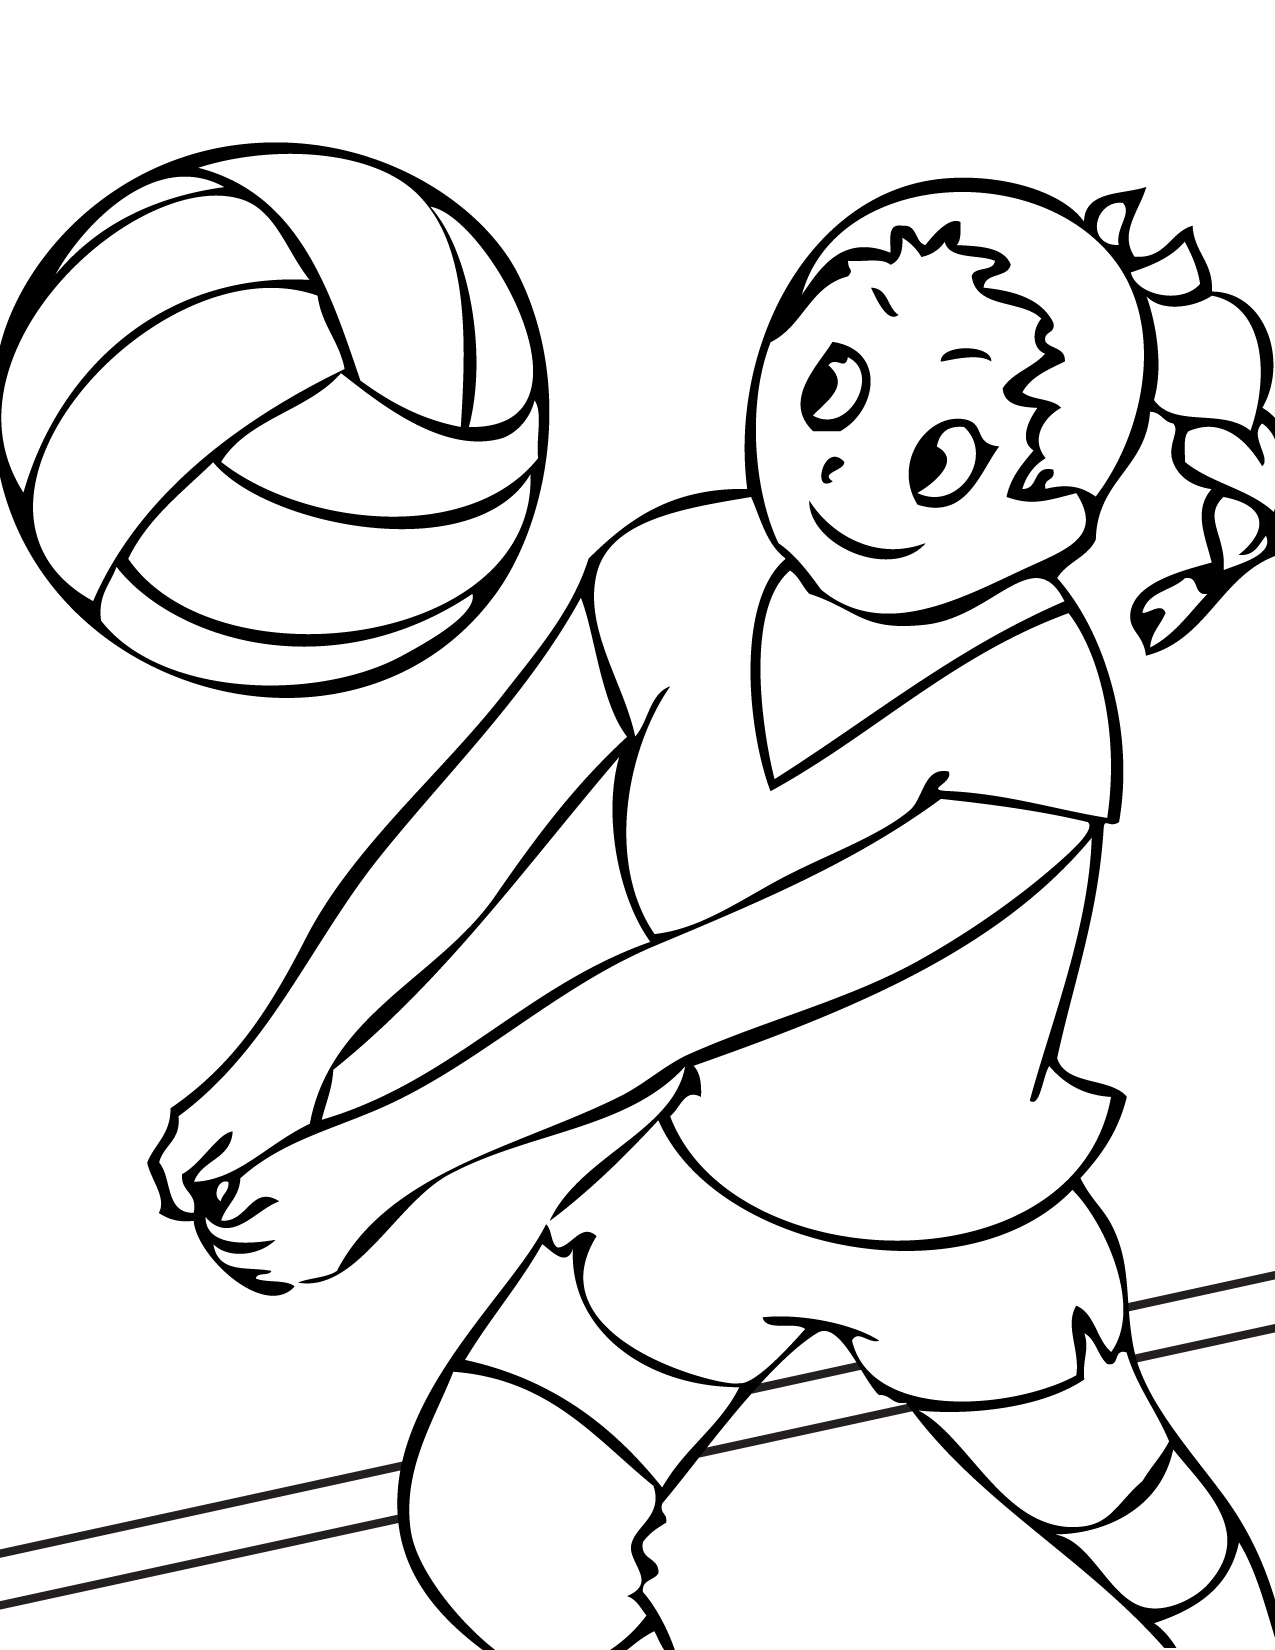 volleyball coloring page,printable,coloring pages